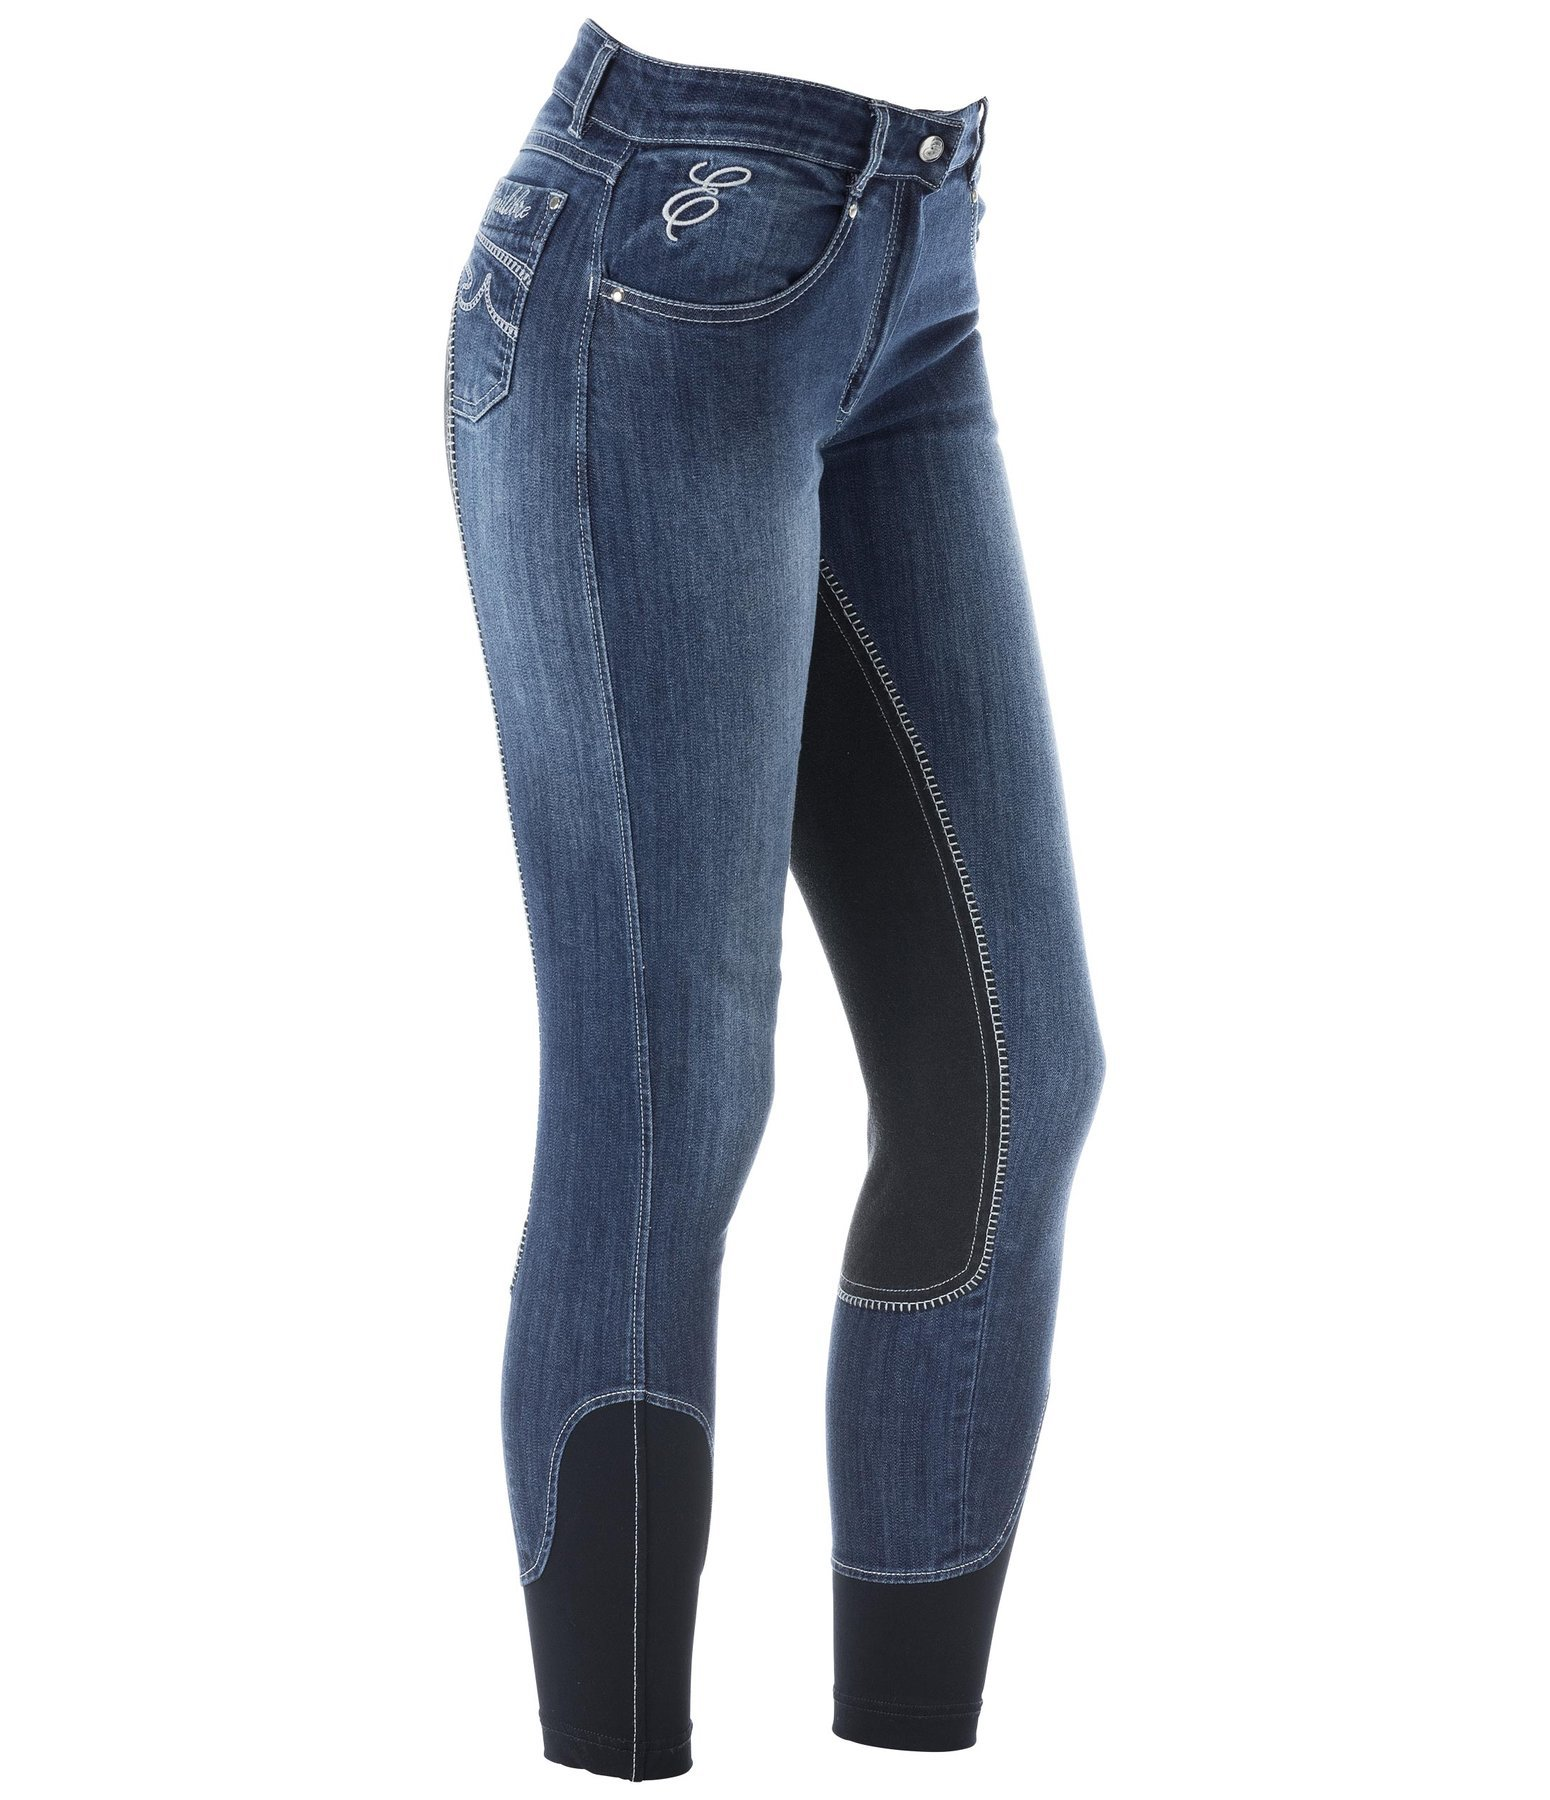 Full-Seat Denim Breeches Johanna